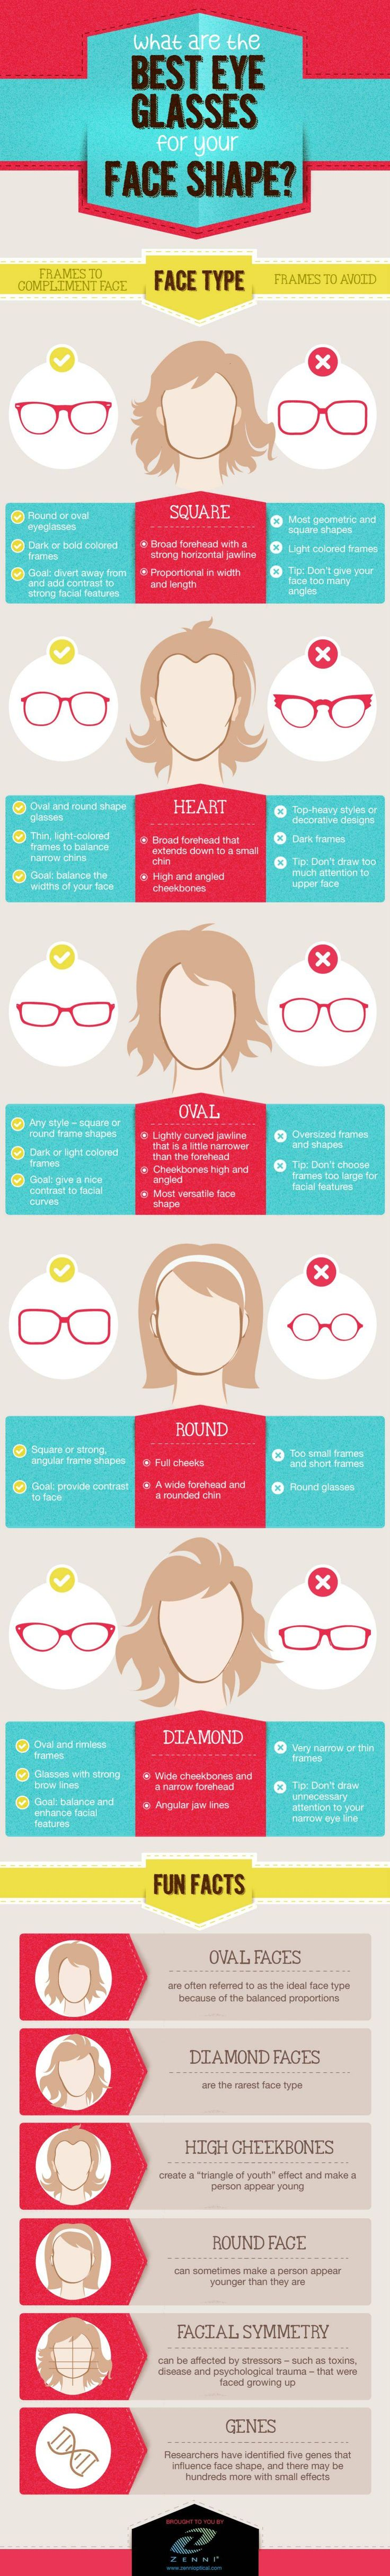 What are the best eye glasses for your face shape?